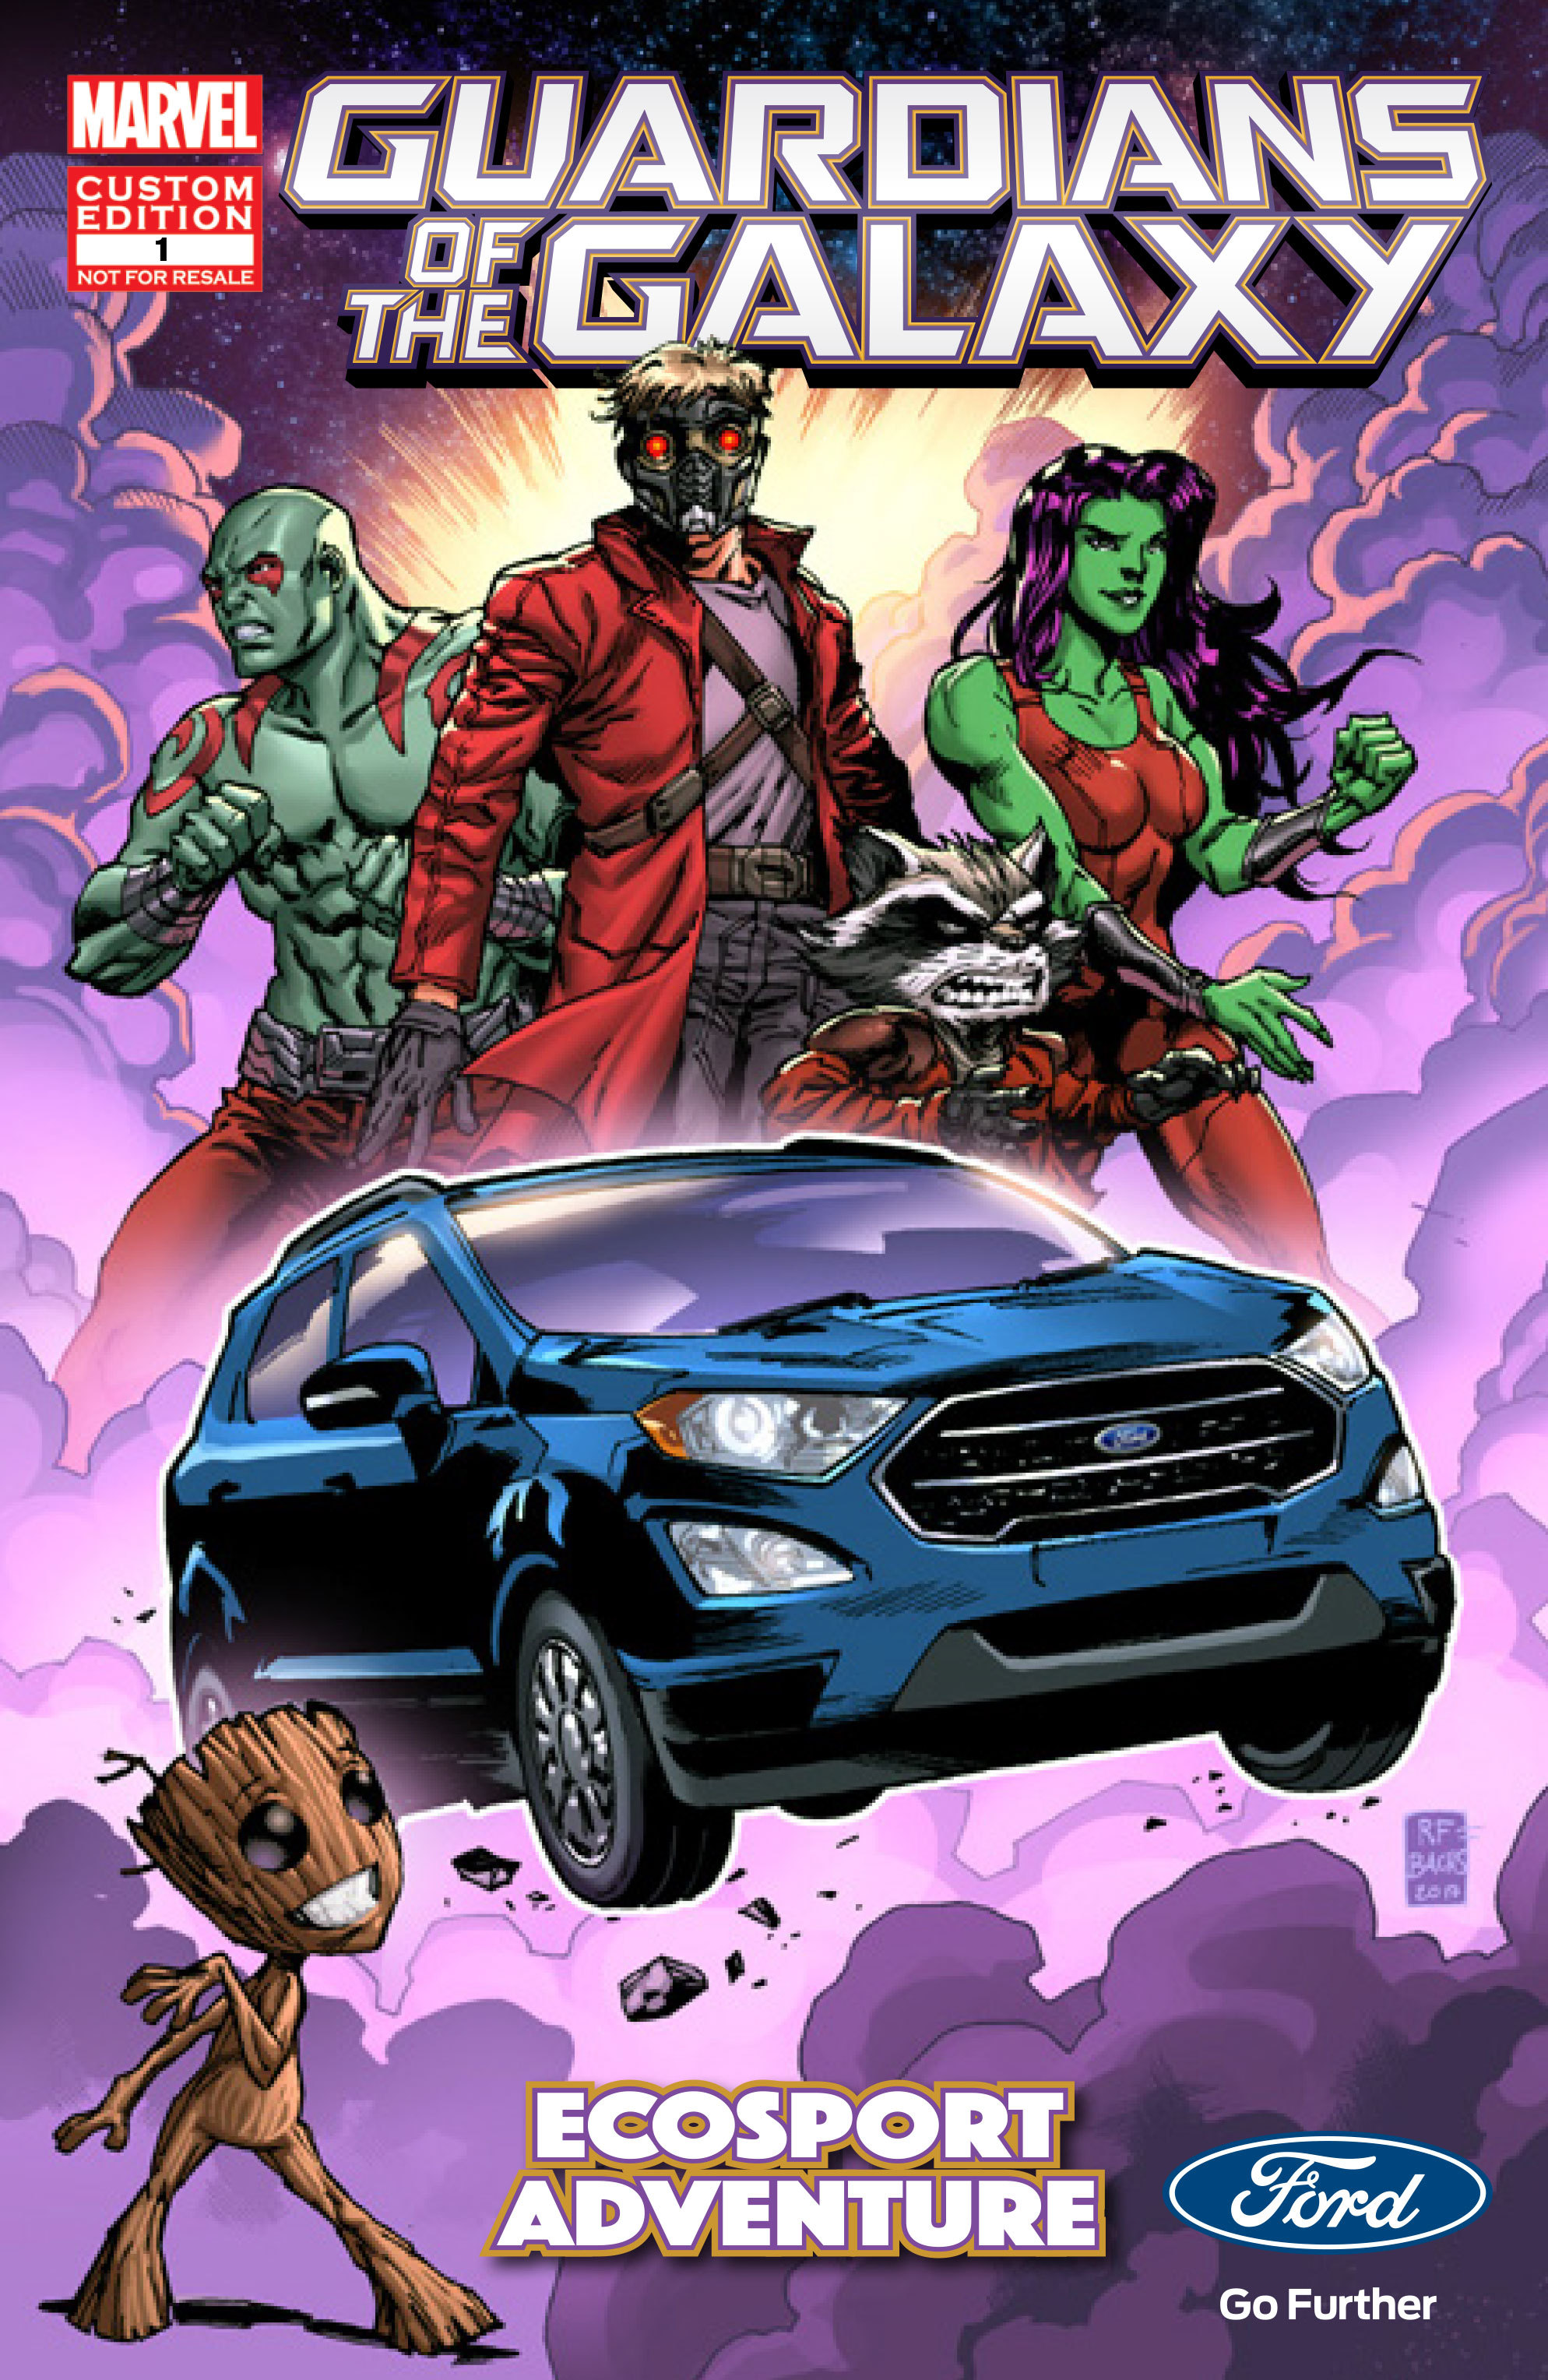 All New Ford Ecosport Rockets Into Marvel Studios Guardians Of The